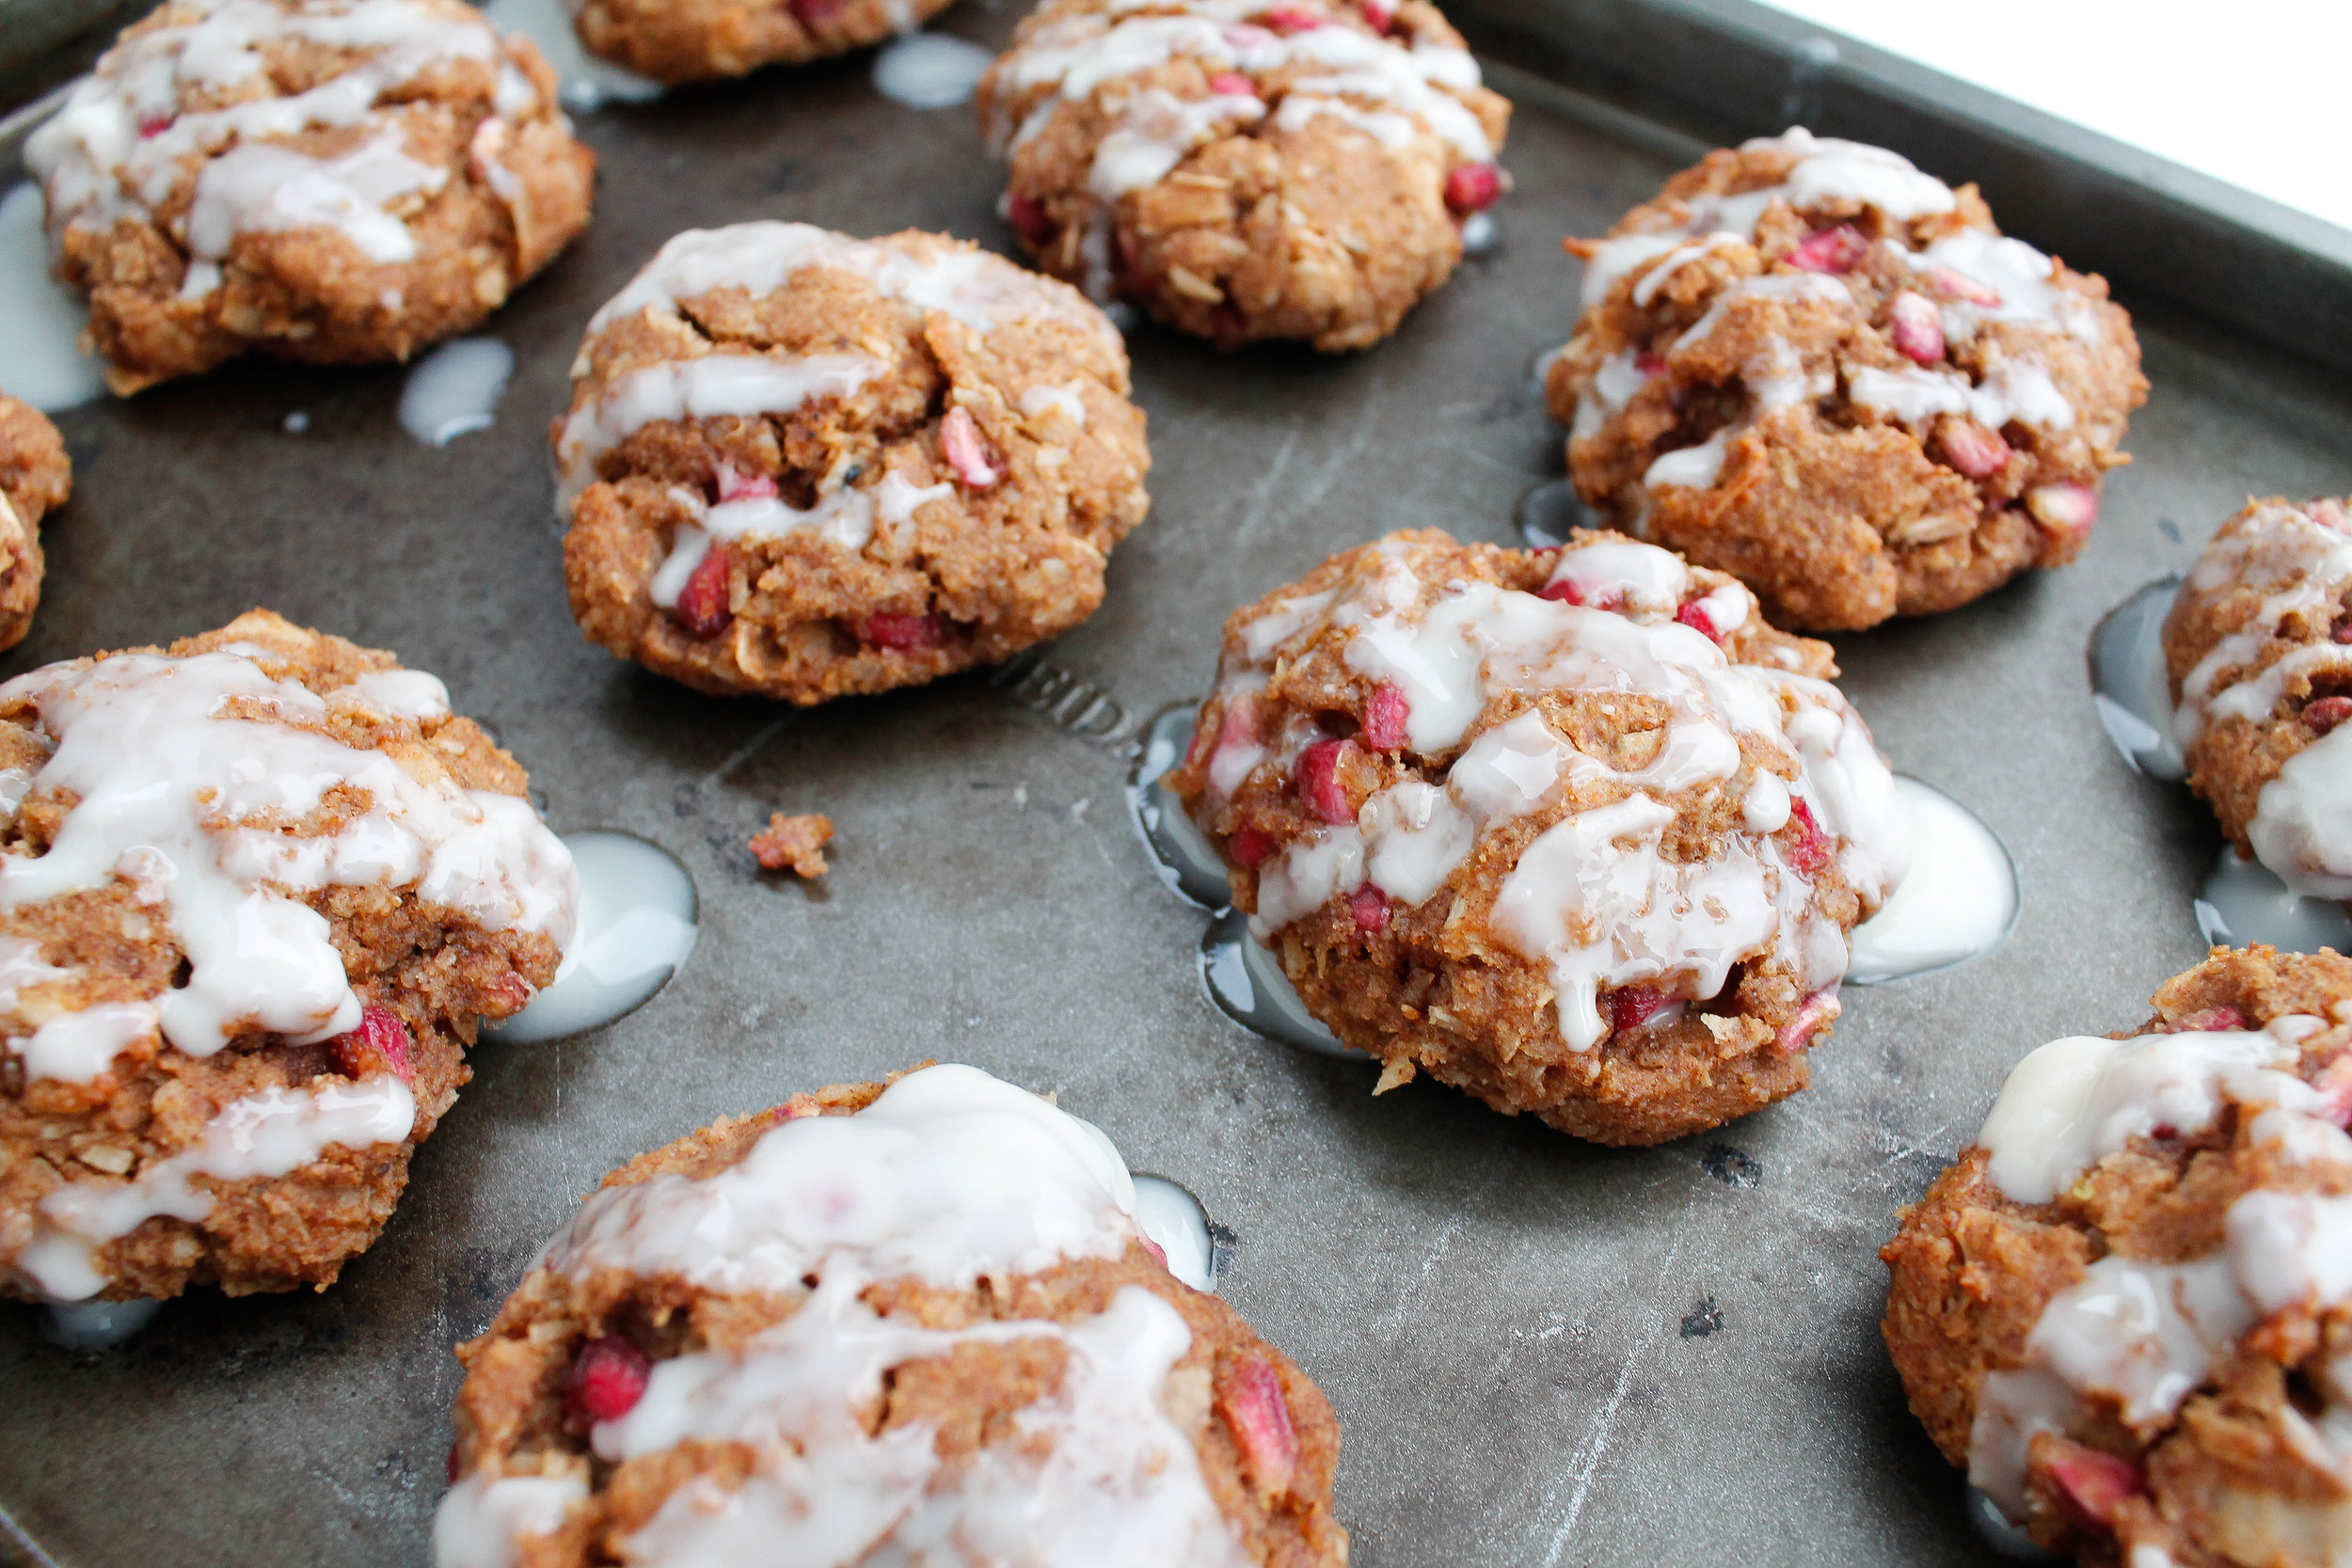 These paleo n'oatmeal cookies are the perfect, grain free, healthy version of classic cinnamon raisin cookies! They're gluten free, dairy free, refined sugar free and Specific Carbohydrate Diet friendly! Made with cinnamon, pomegranate and raw honey, they're the perfect healthy cookie and healthy dessert recipe for a healthy holiday. Click through for the recipe! #paleobaking #specificcarbohydratediet #healthyholidays